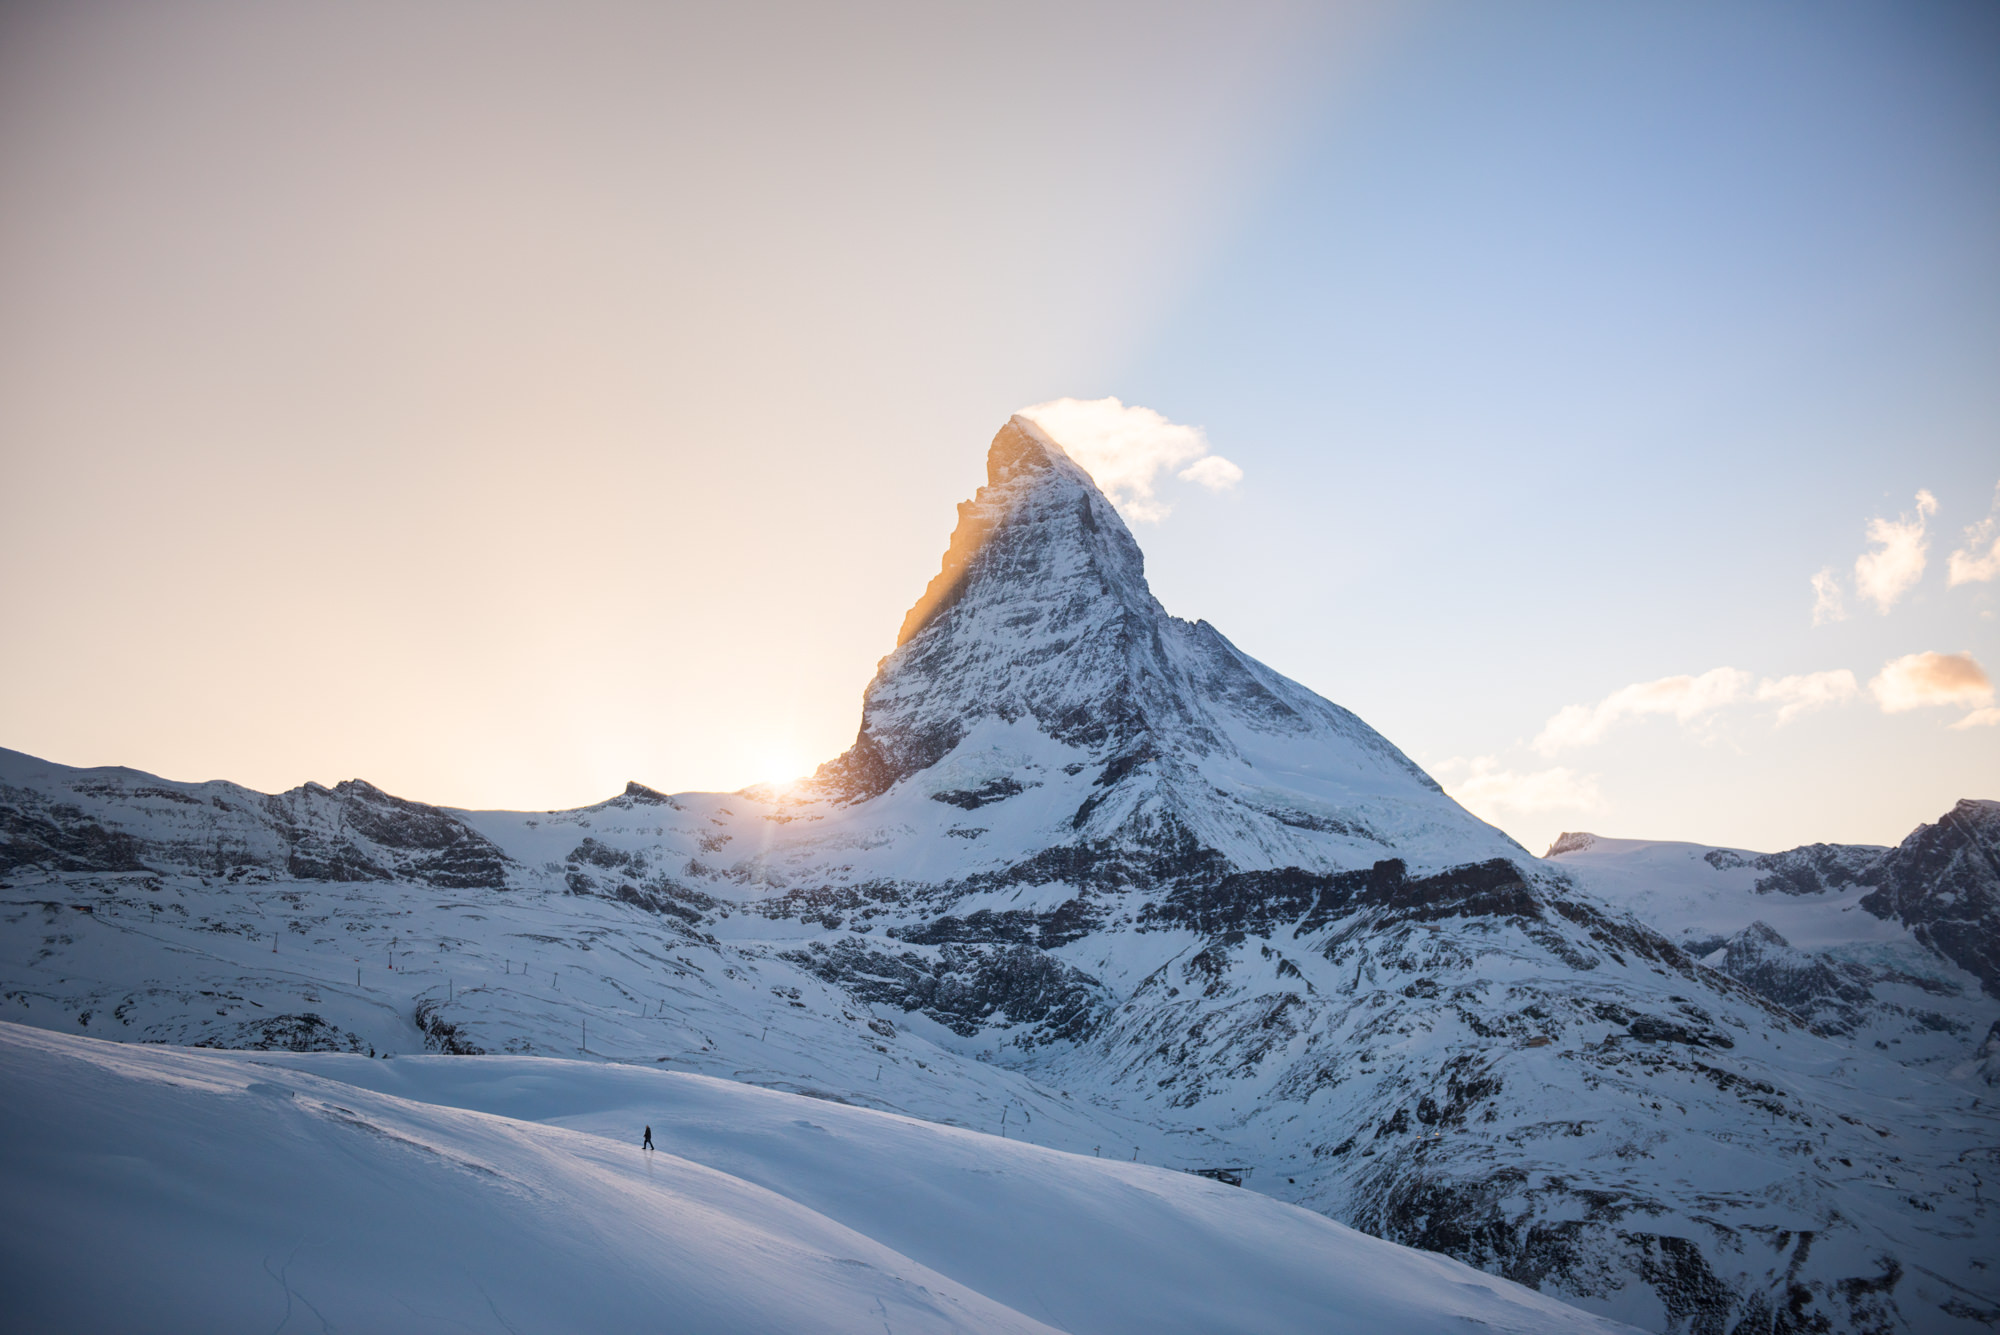 Sunset beaming behind the Matterhorn with a man walking in front